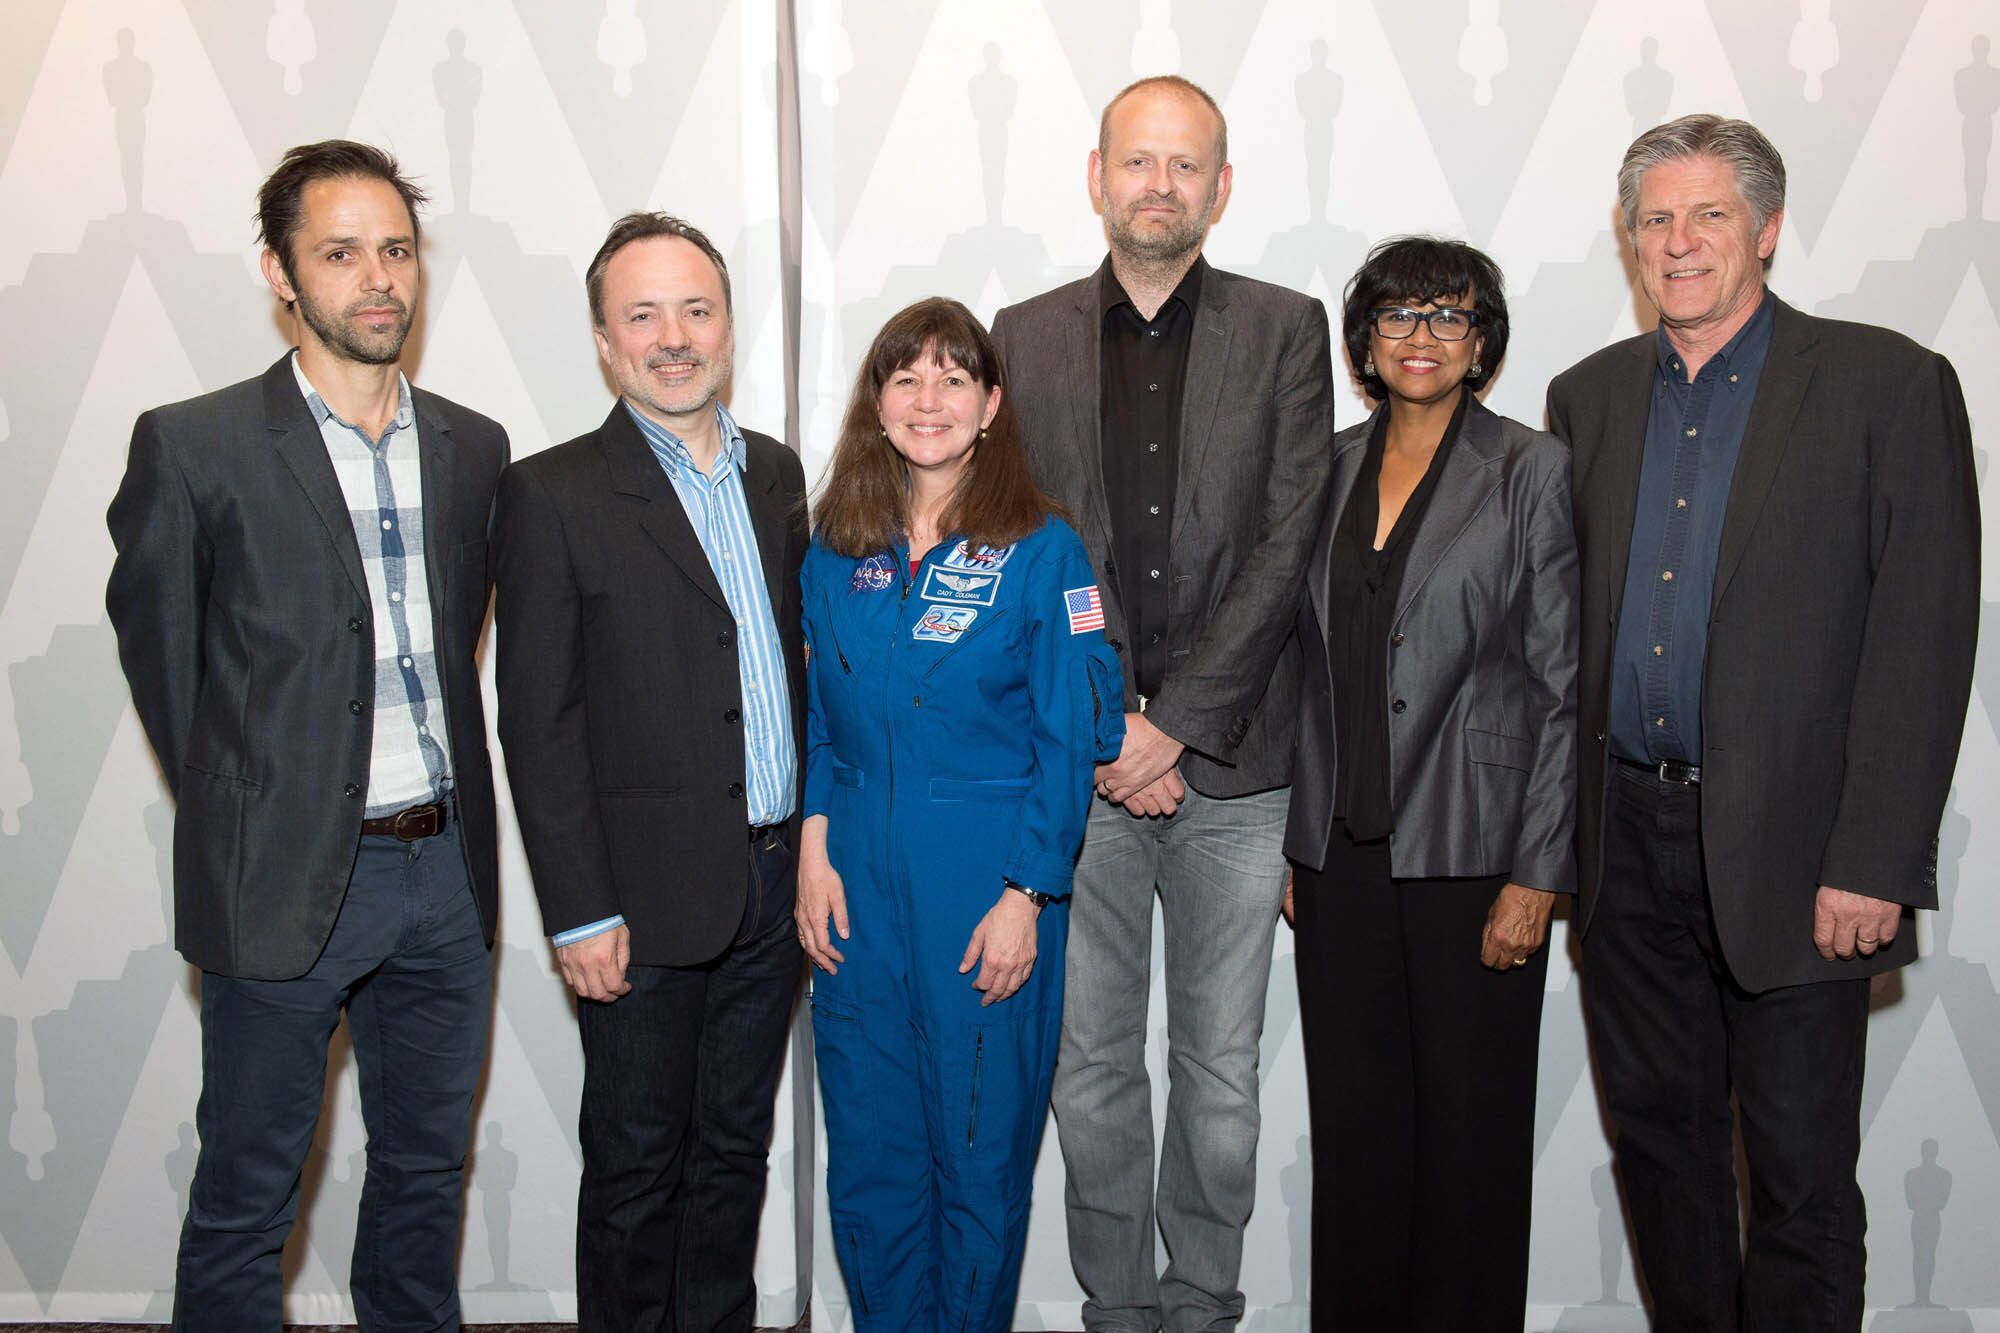 (left to right): Animation Supervisor Max Solomon, Visual Effects Supervisor Tim Webber, Astronaut Cady Coleman, Film Editor Mark Sanger, Academy President Cheryl Boone Isaacs and Academy Governor Bill Kroyer.